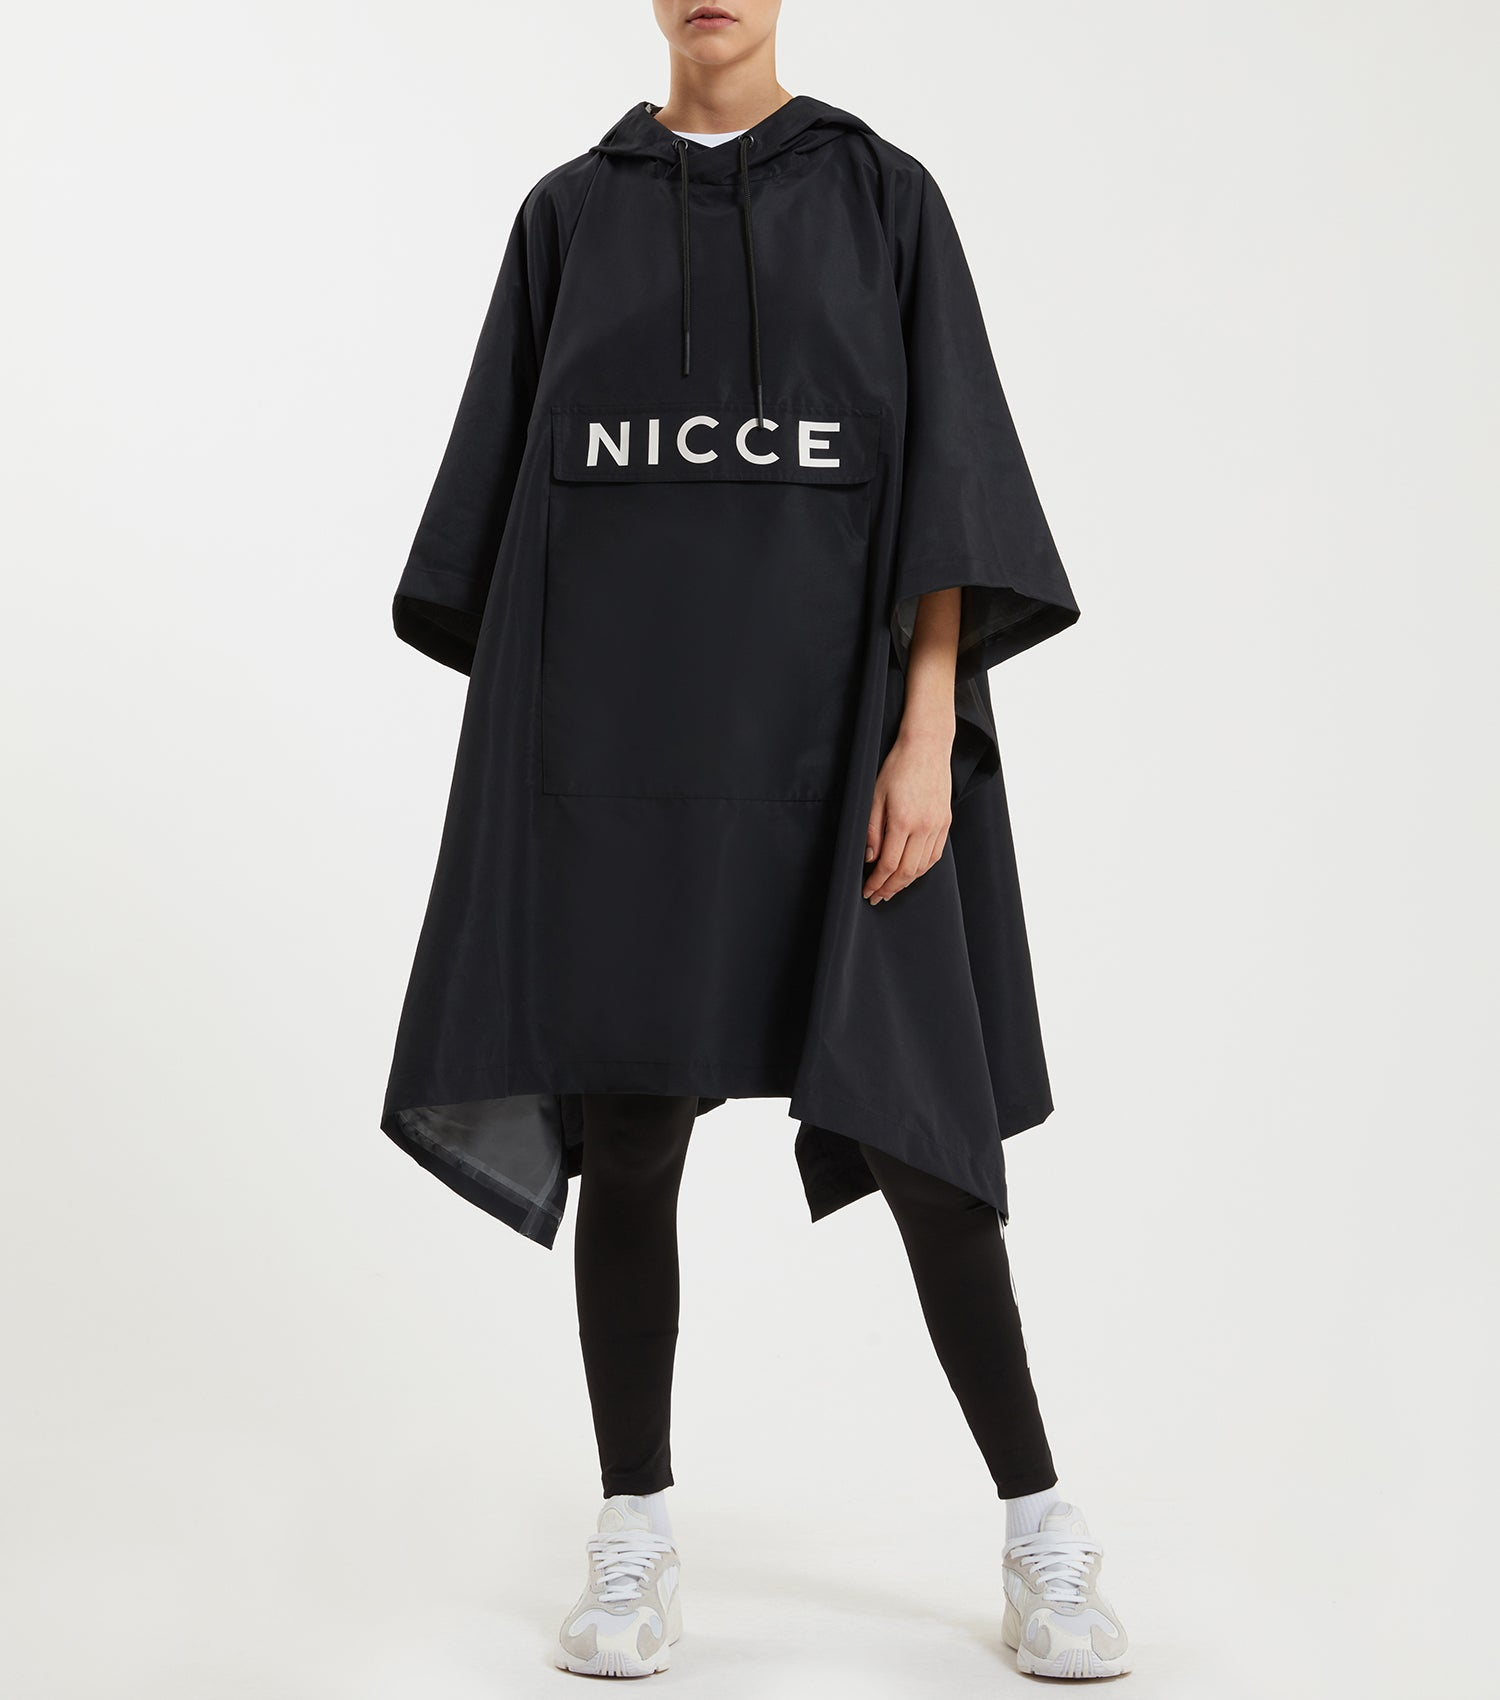 NICCE Womens Poncho | Black, Outerwear